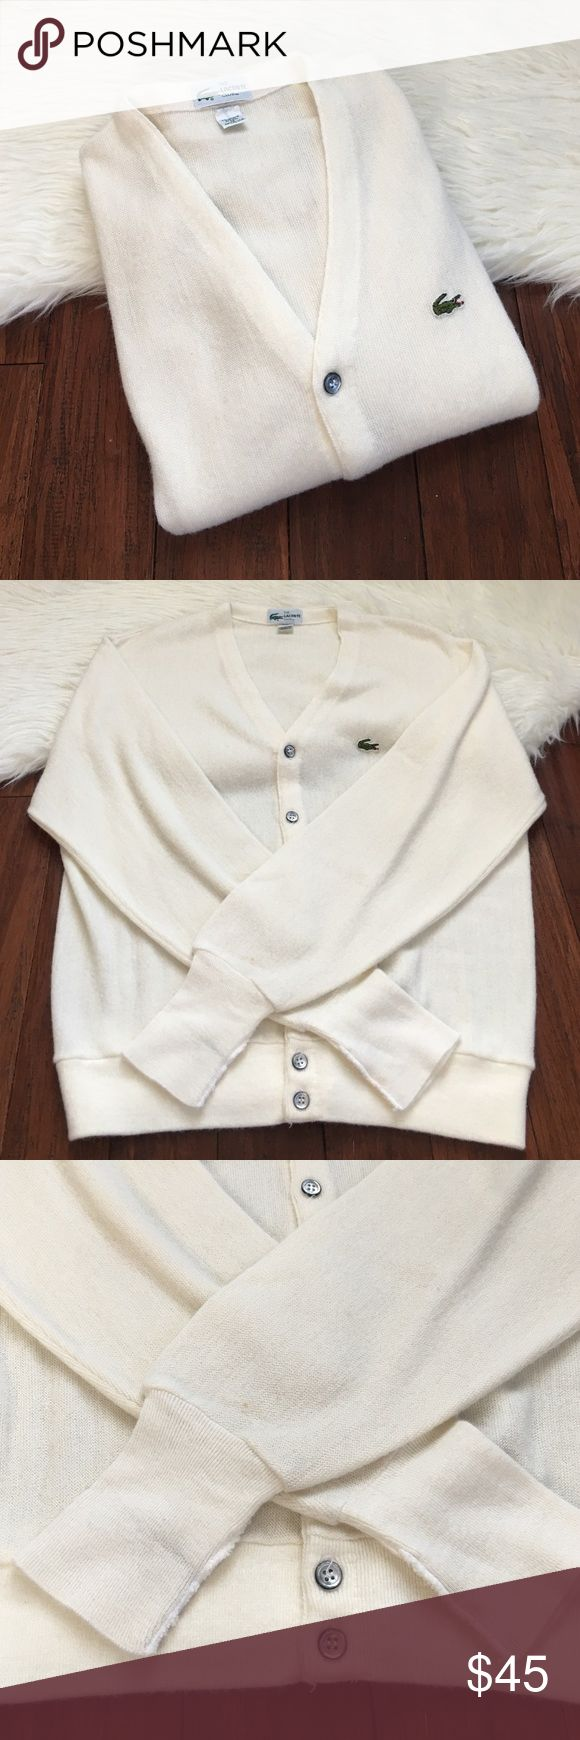 Men's | Lacoste Club | Vintage White Cardigan In excellent condition. No flaws except one small spot on the sleeve. Can easily come out. 100% orlon acrylic. Lacoste Sweaters Cardigan